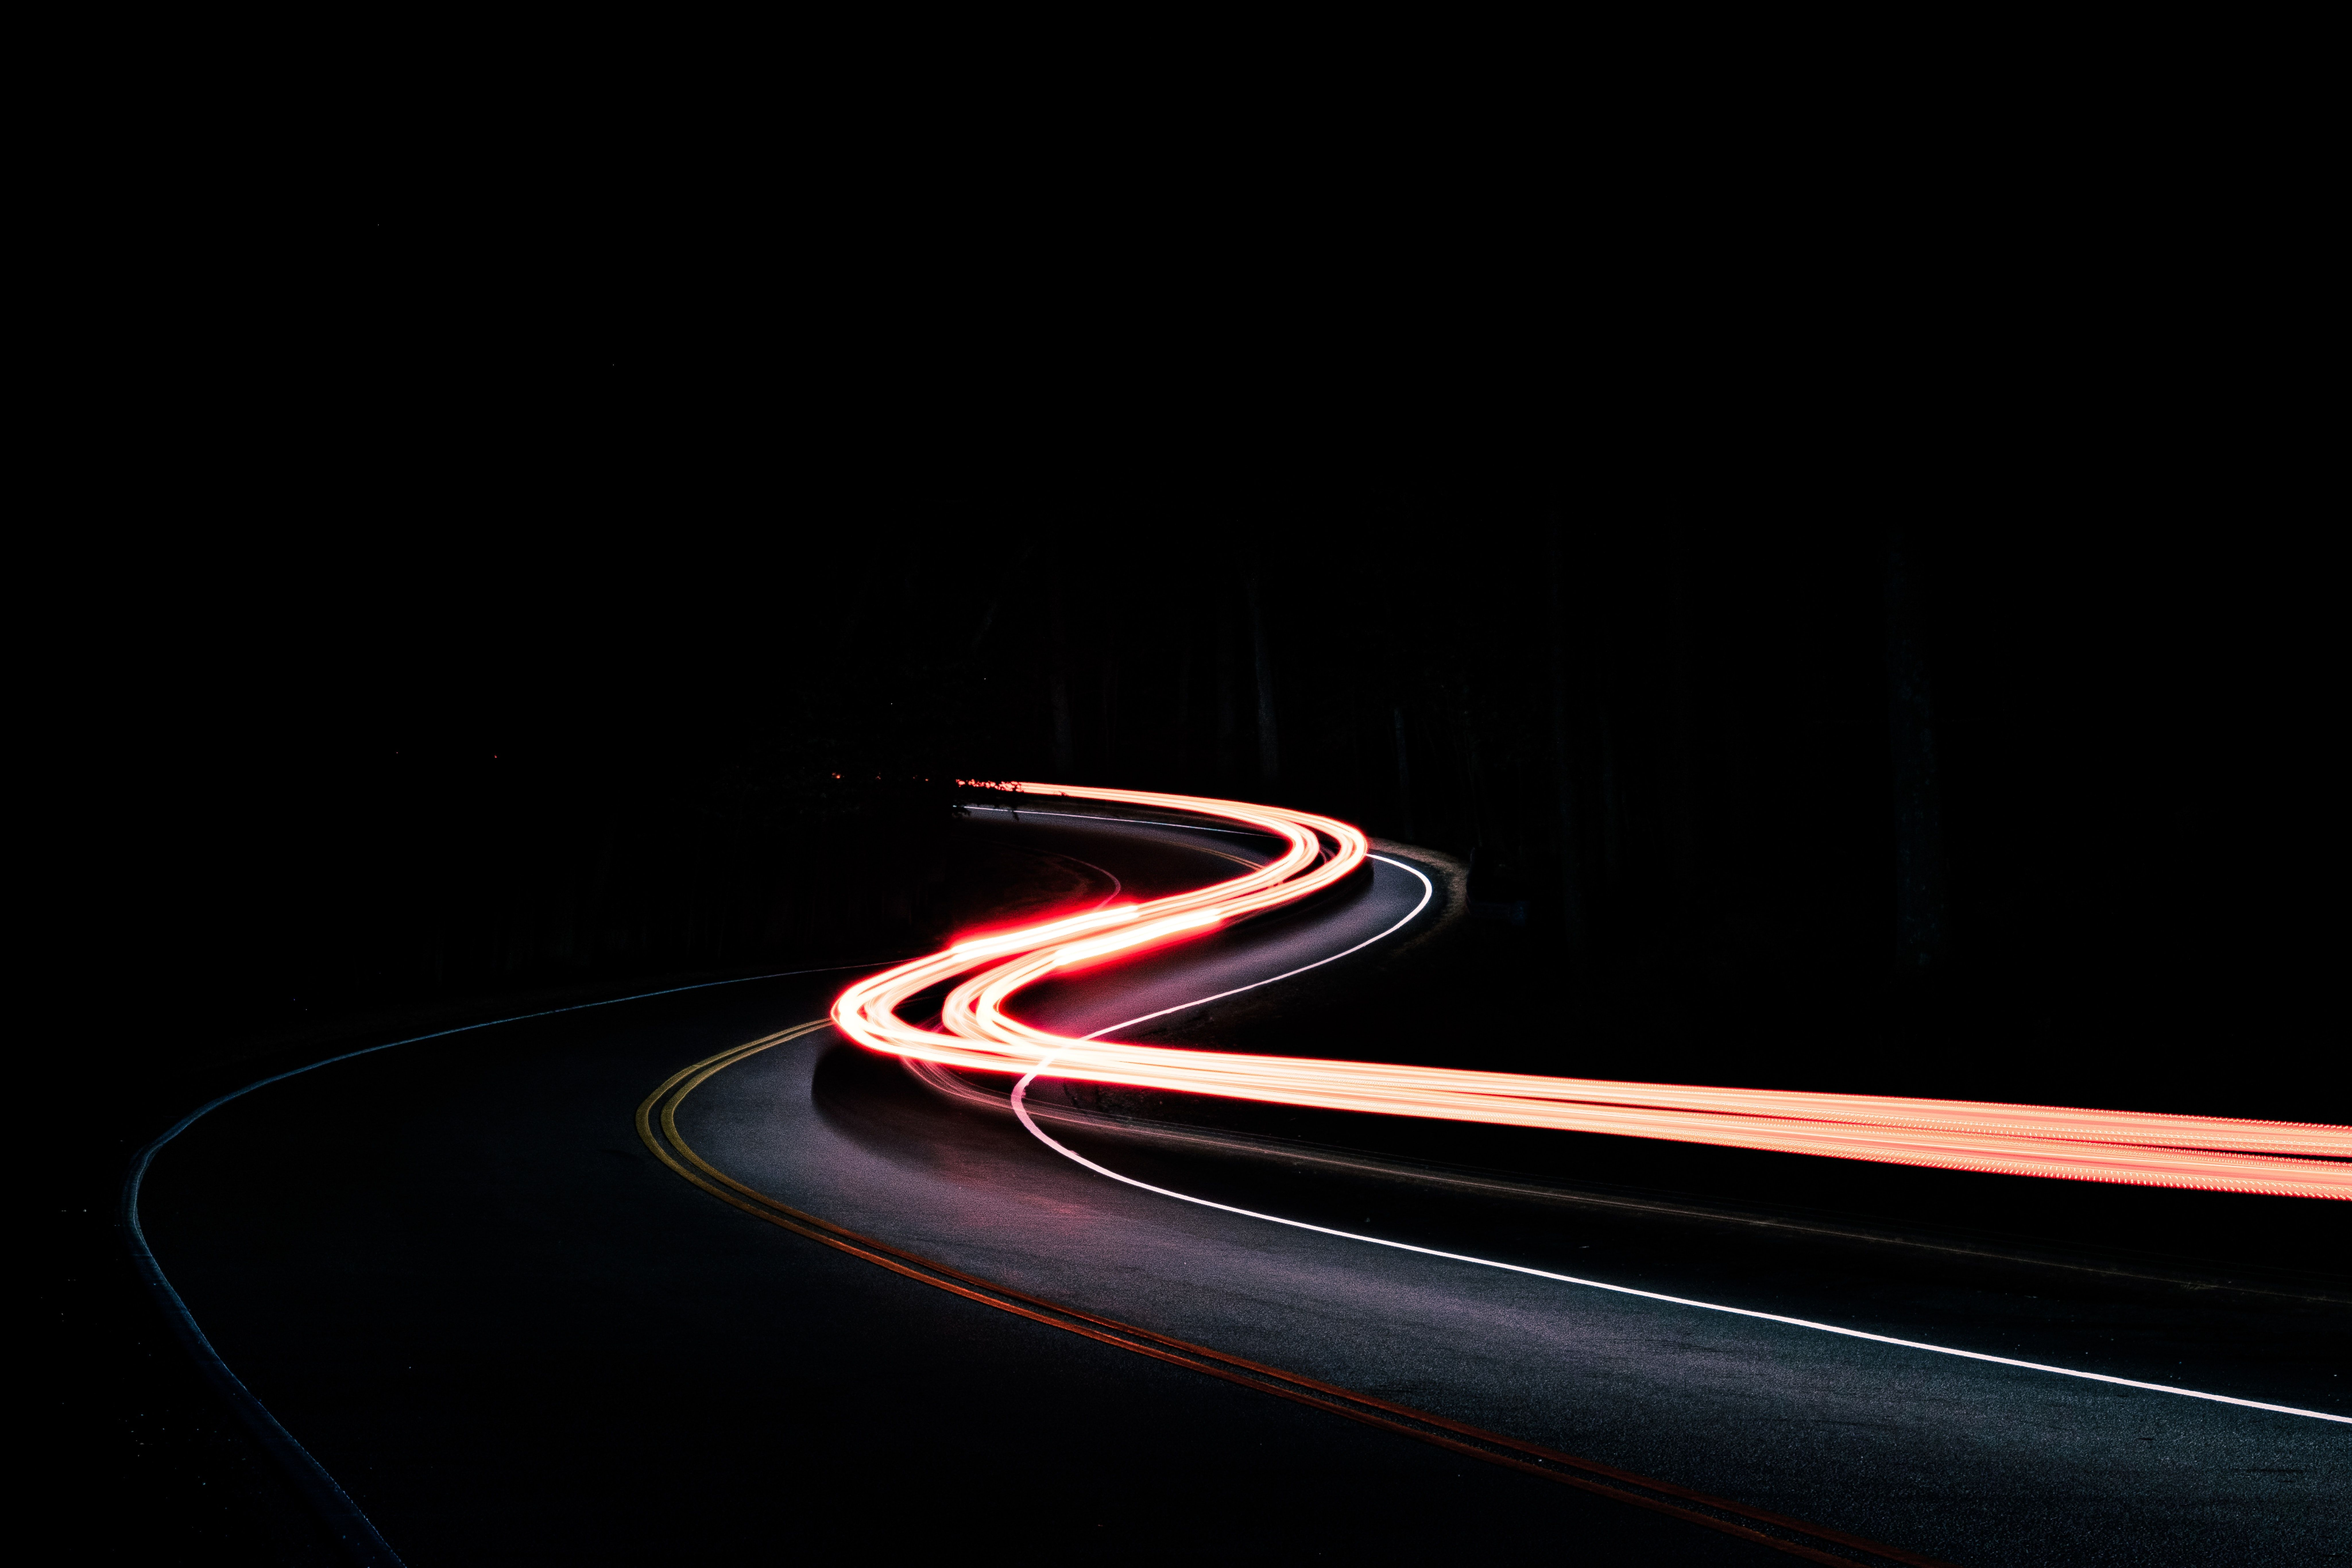 Long Exposure Road Wallpaper And Black Wallpapers Hd Photo By